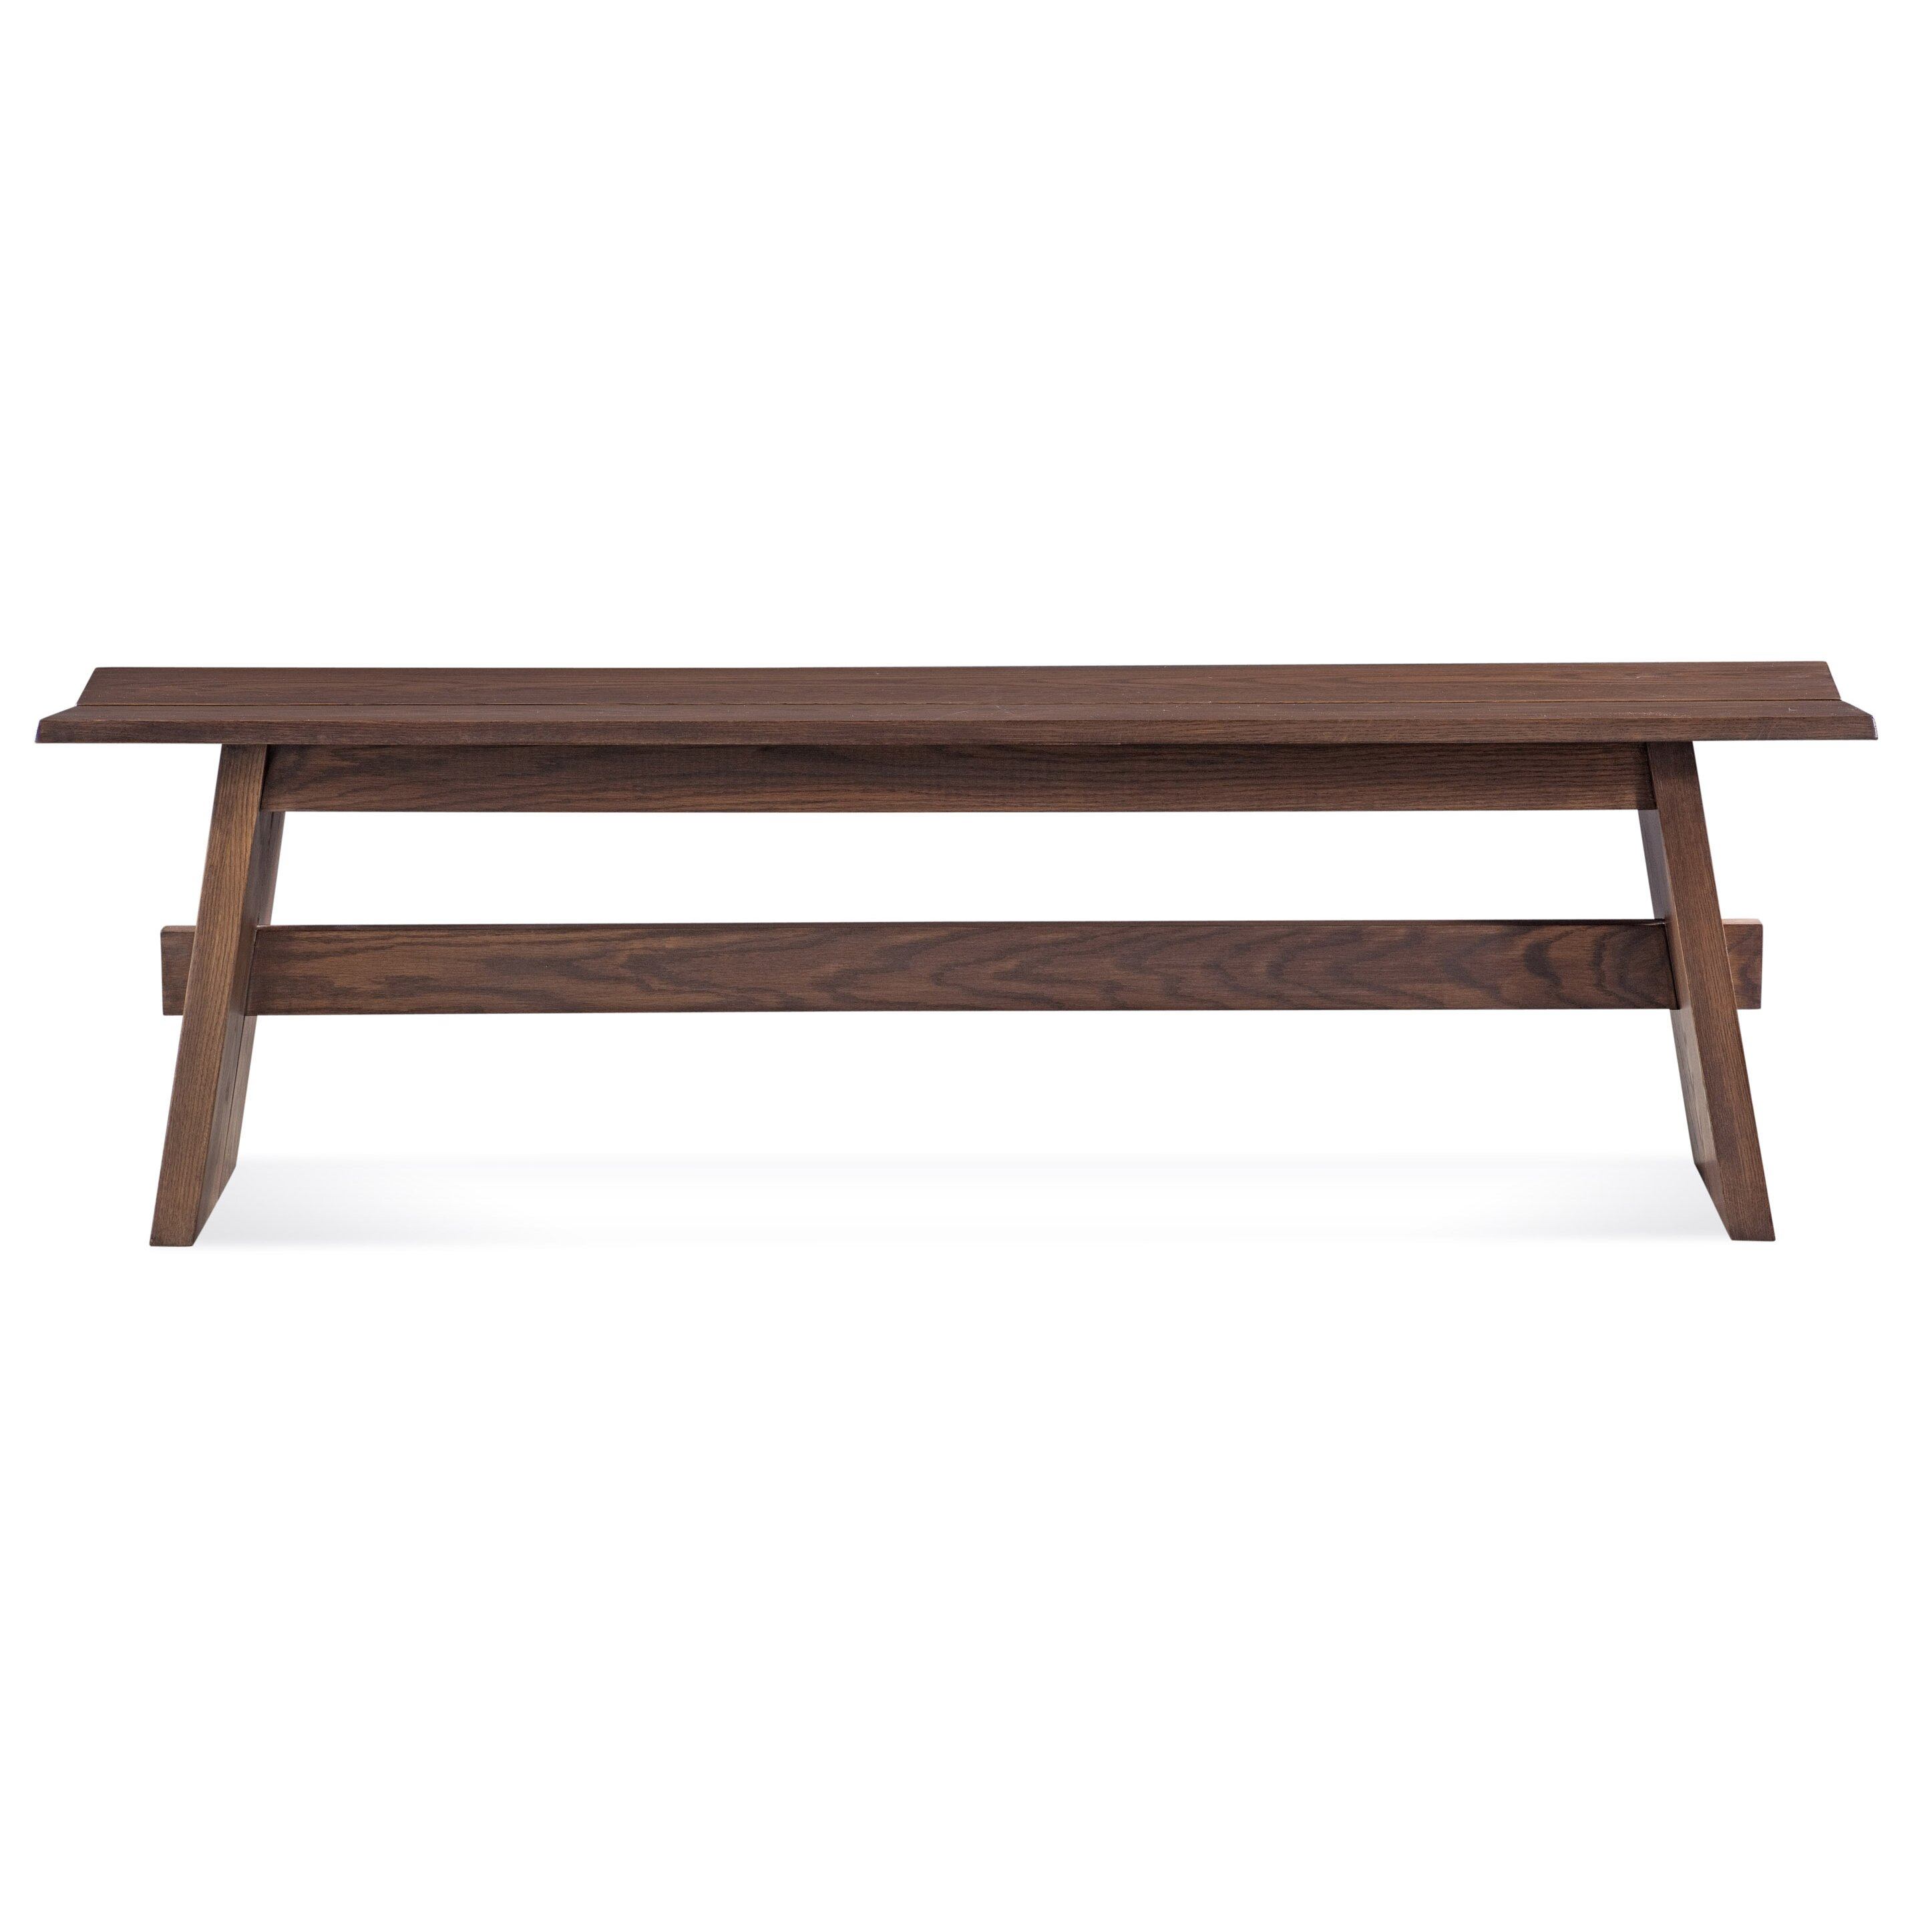 Marvelous photograph of Saloom Furniture Split Base Wood Kitchen Bench Wayfair with #44302B color and 2893x2893 pixels